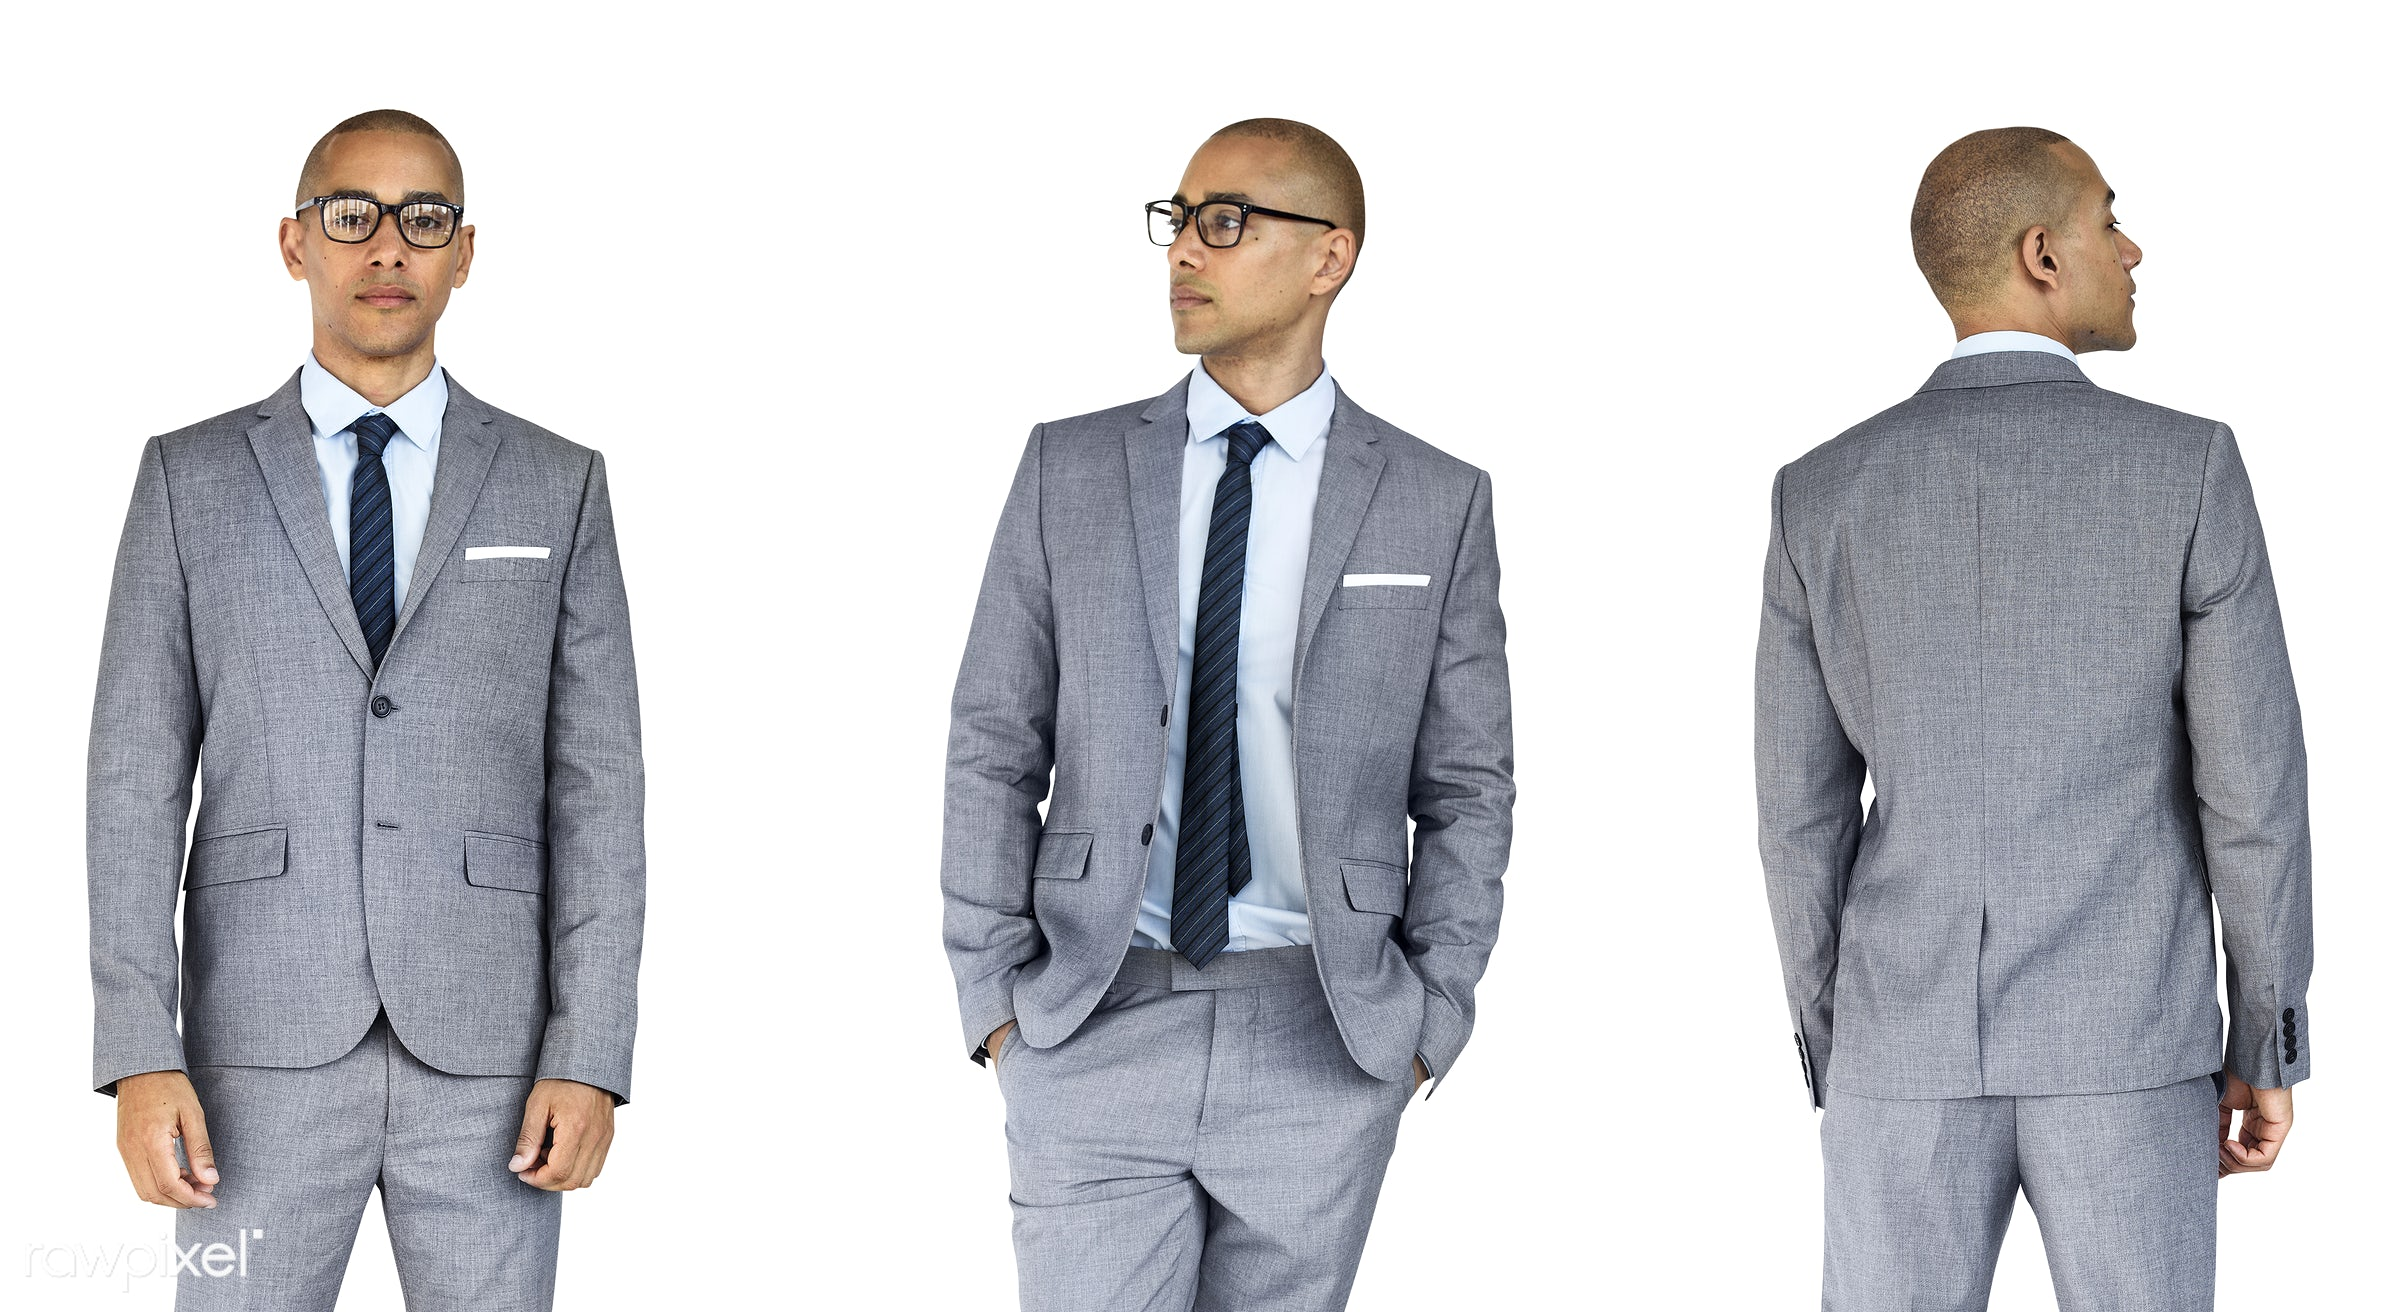 adult, alone, business, businessman, businessmen, career, caucasian, cheerful, collection, diverse, diversity, formal,...